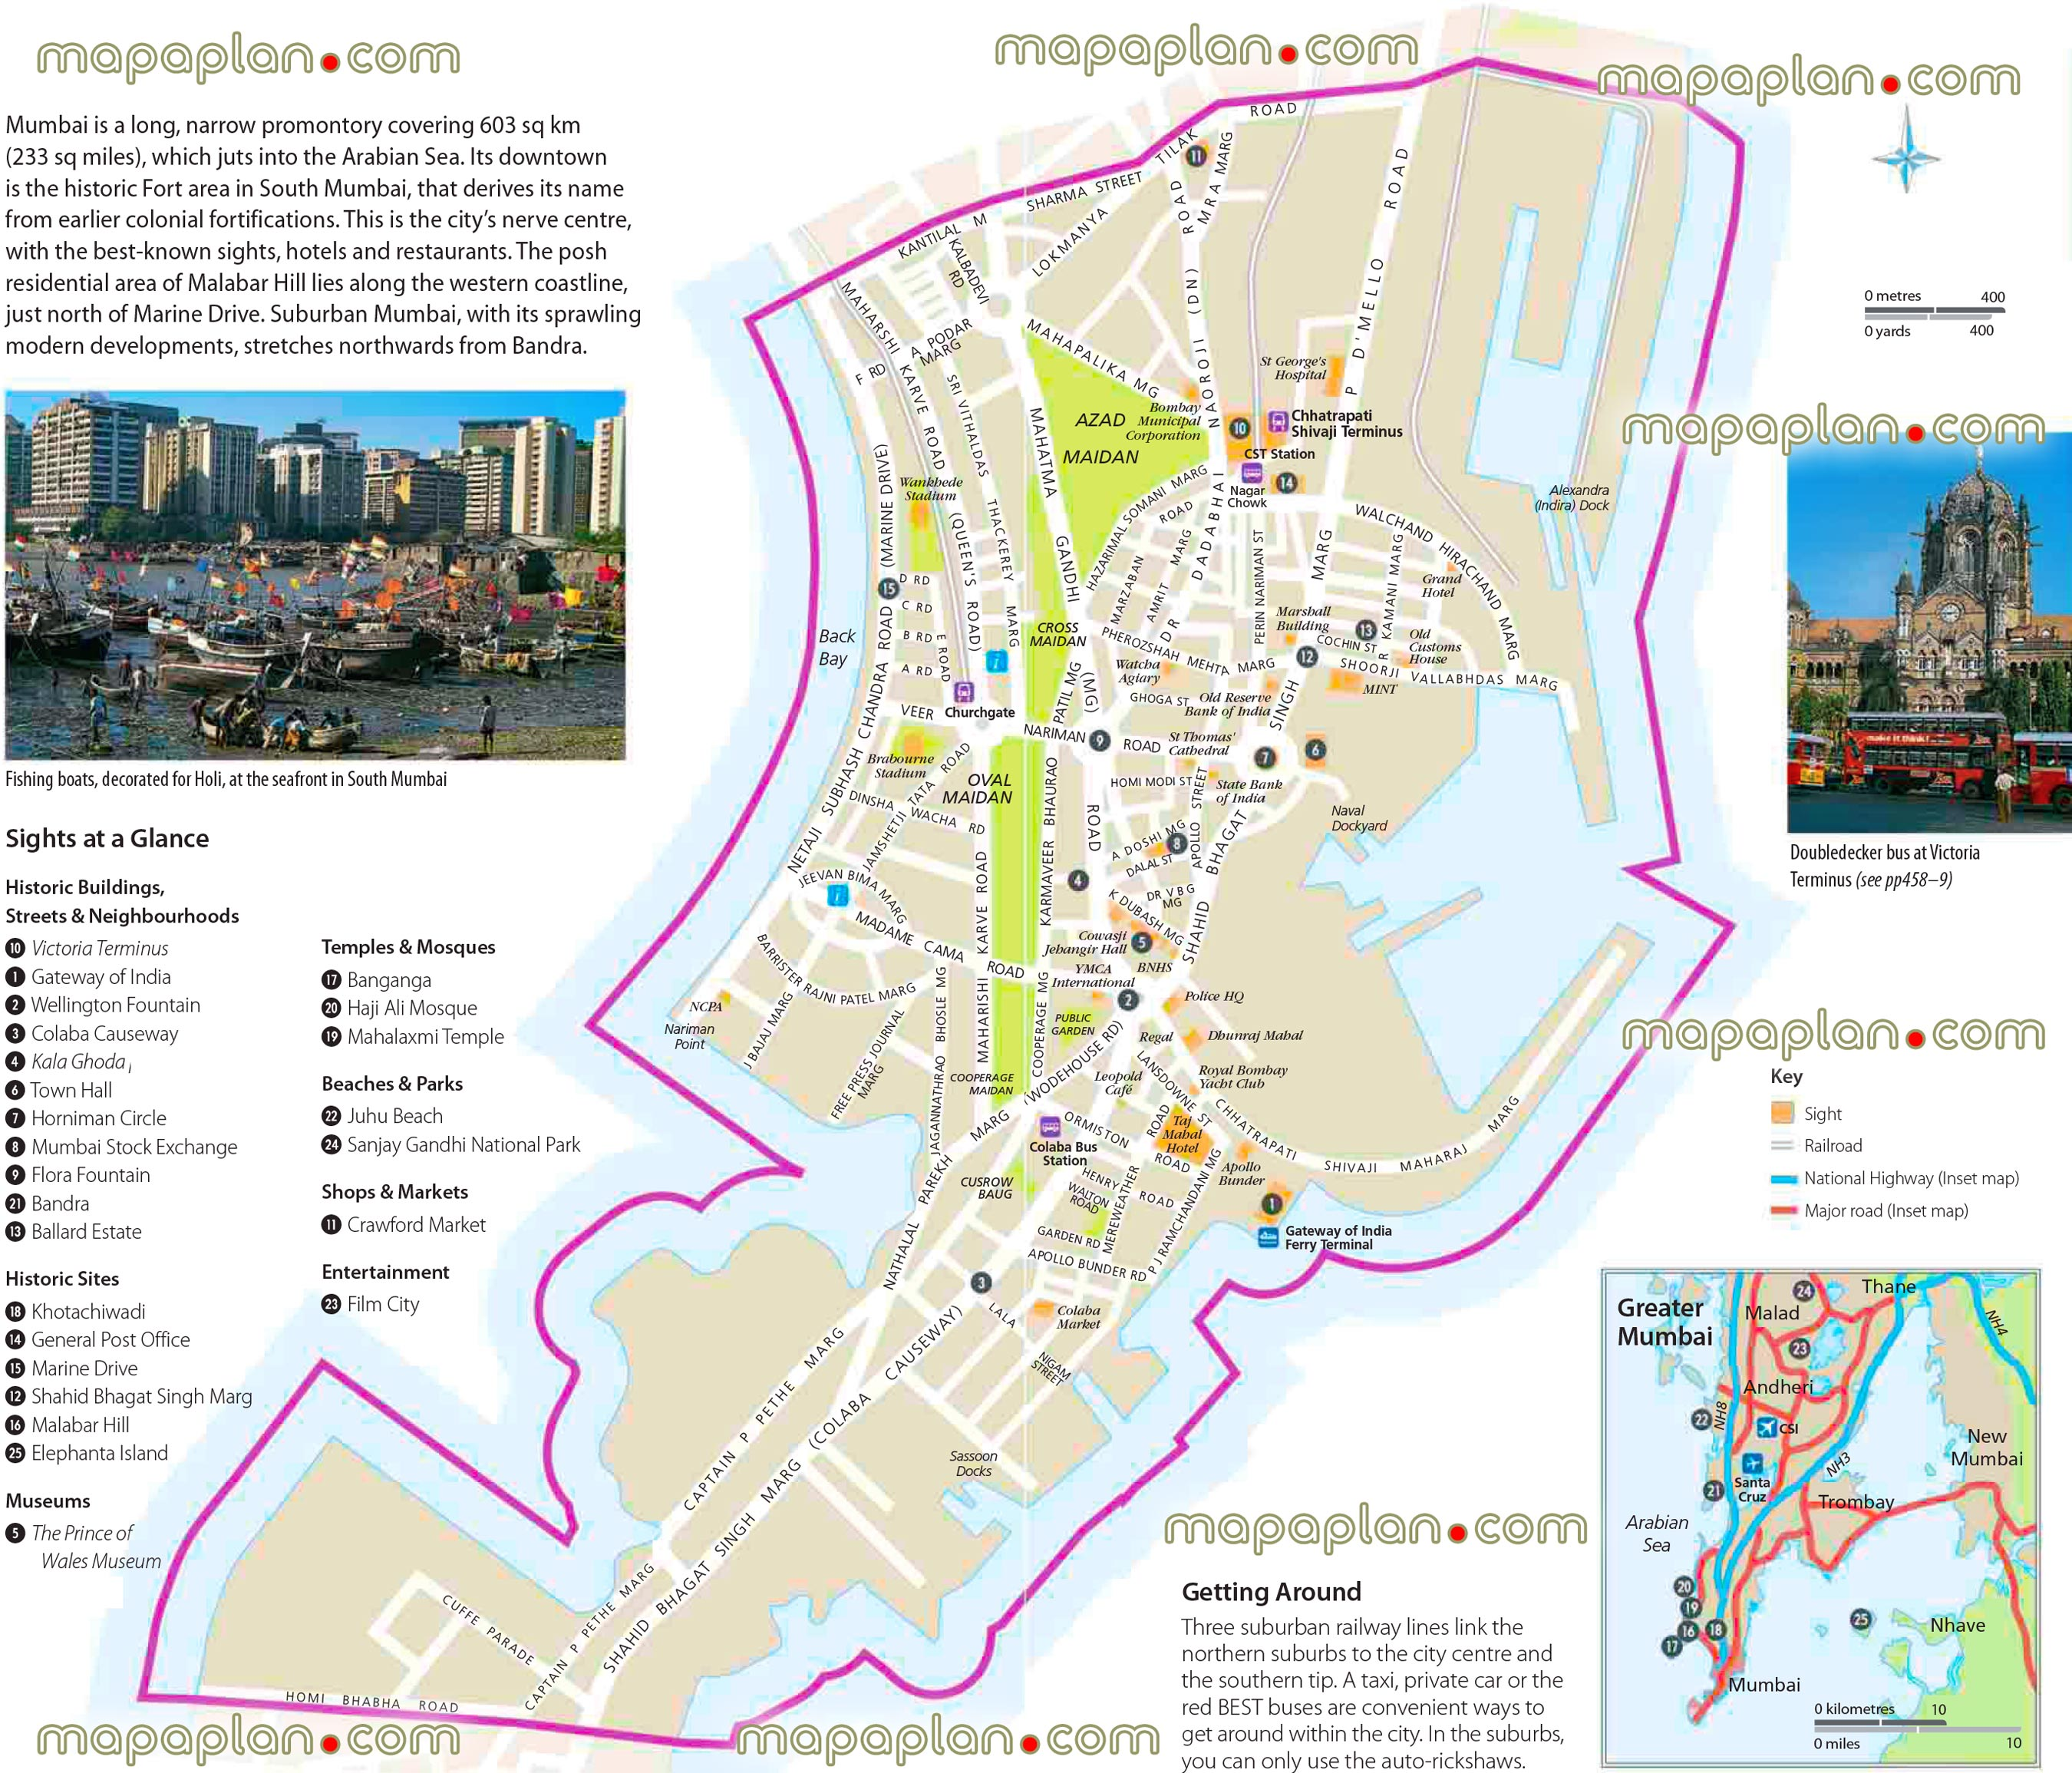 Mumbai Tourist Map Mumbai maps   Top tourist attractions   Free, printable city